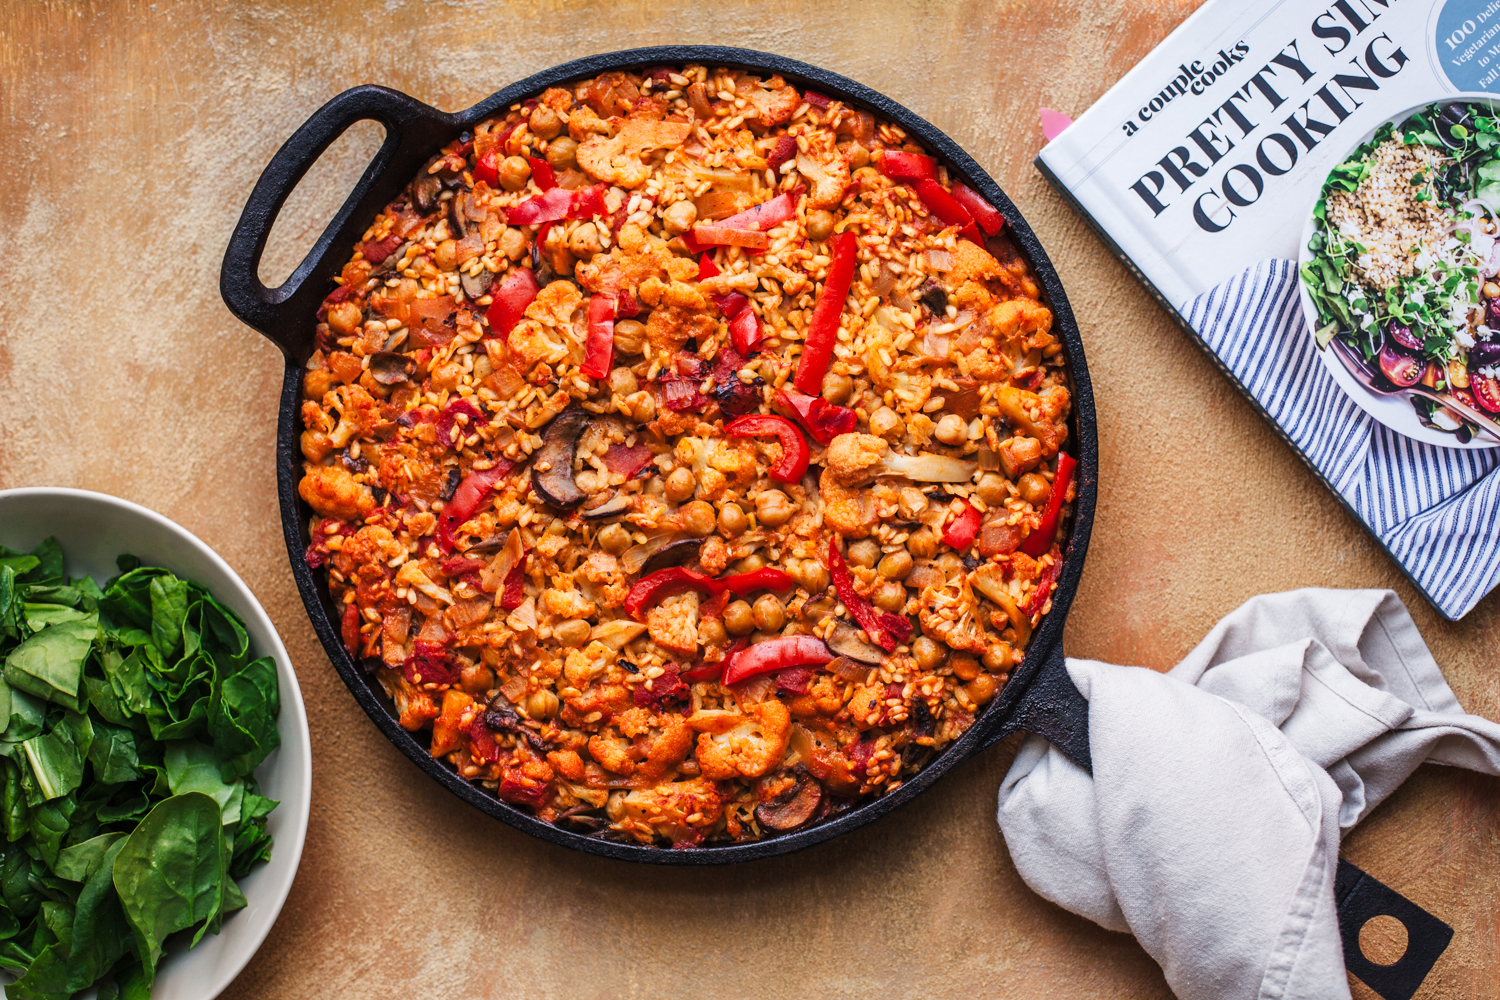 Veggie Supreme Paella From Pretty Simple Cooking - Golubka Kitchen